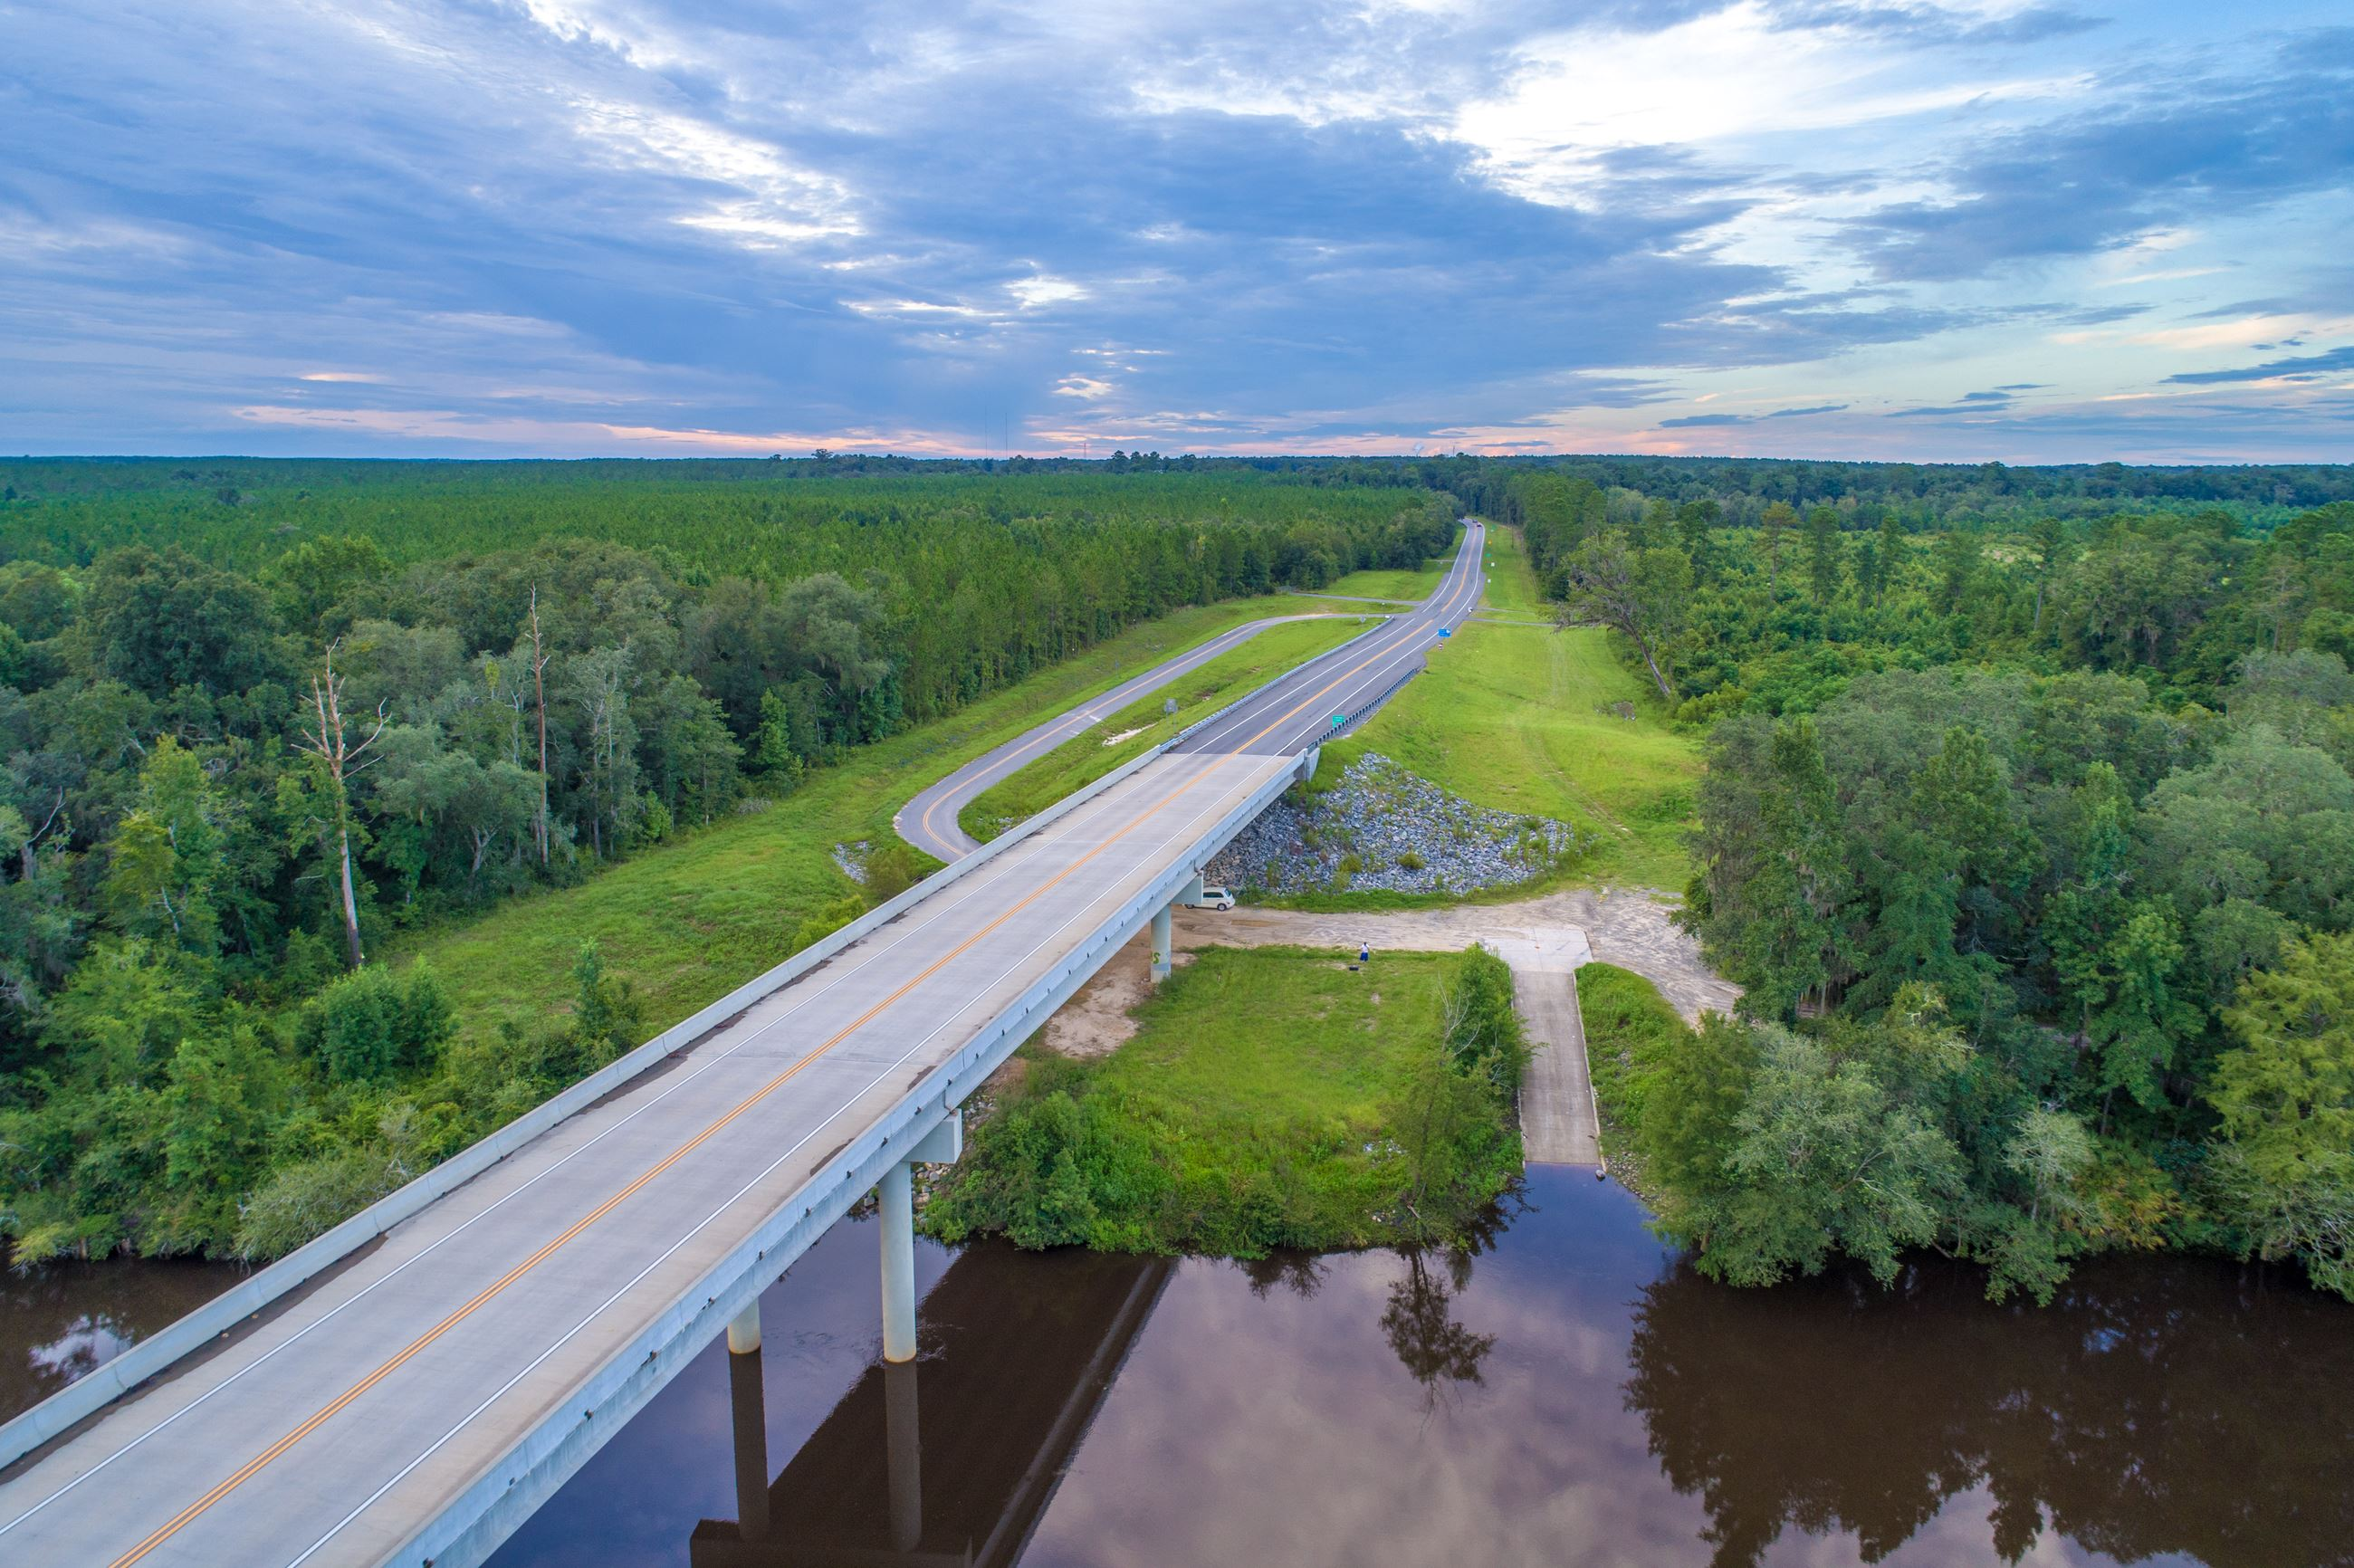 Image of an aerial view of a boat ramp into a river next to a highway.